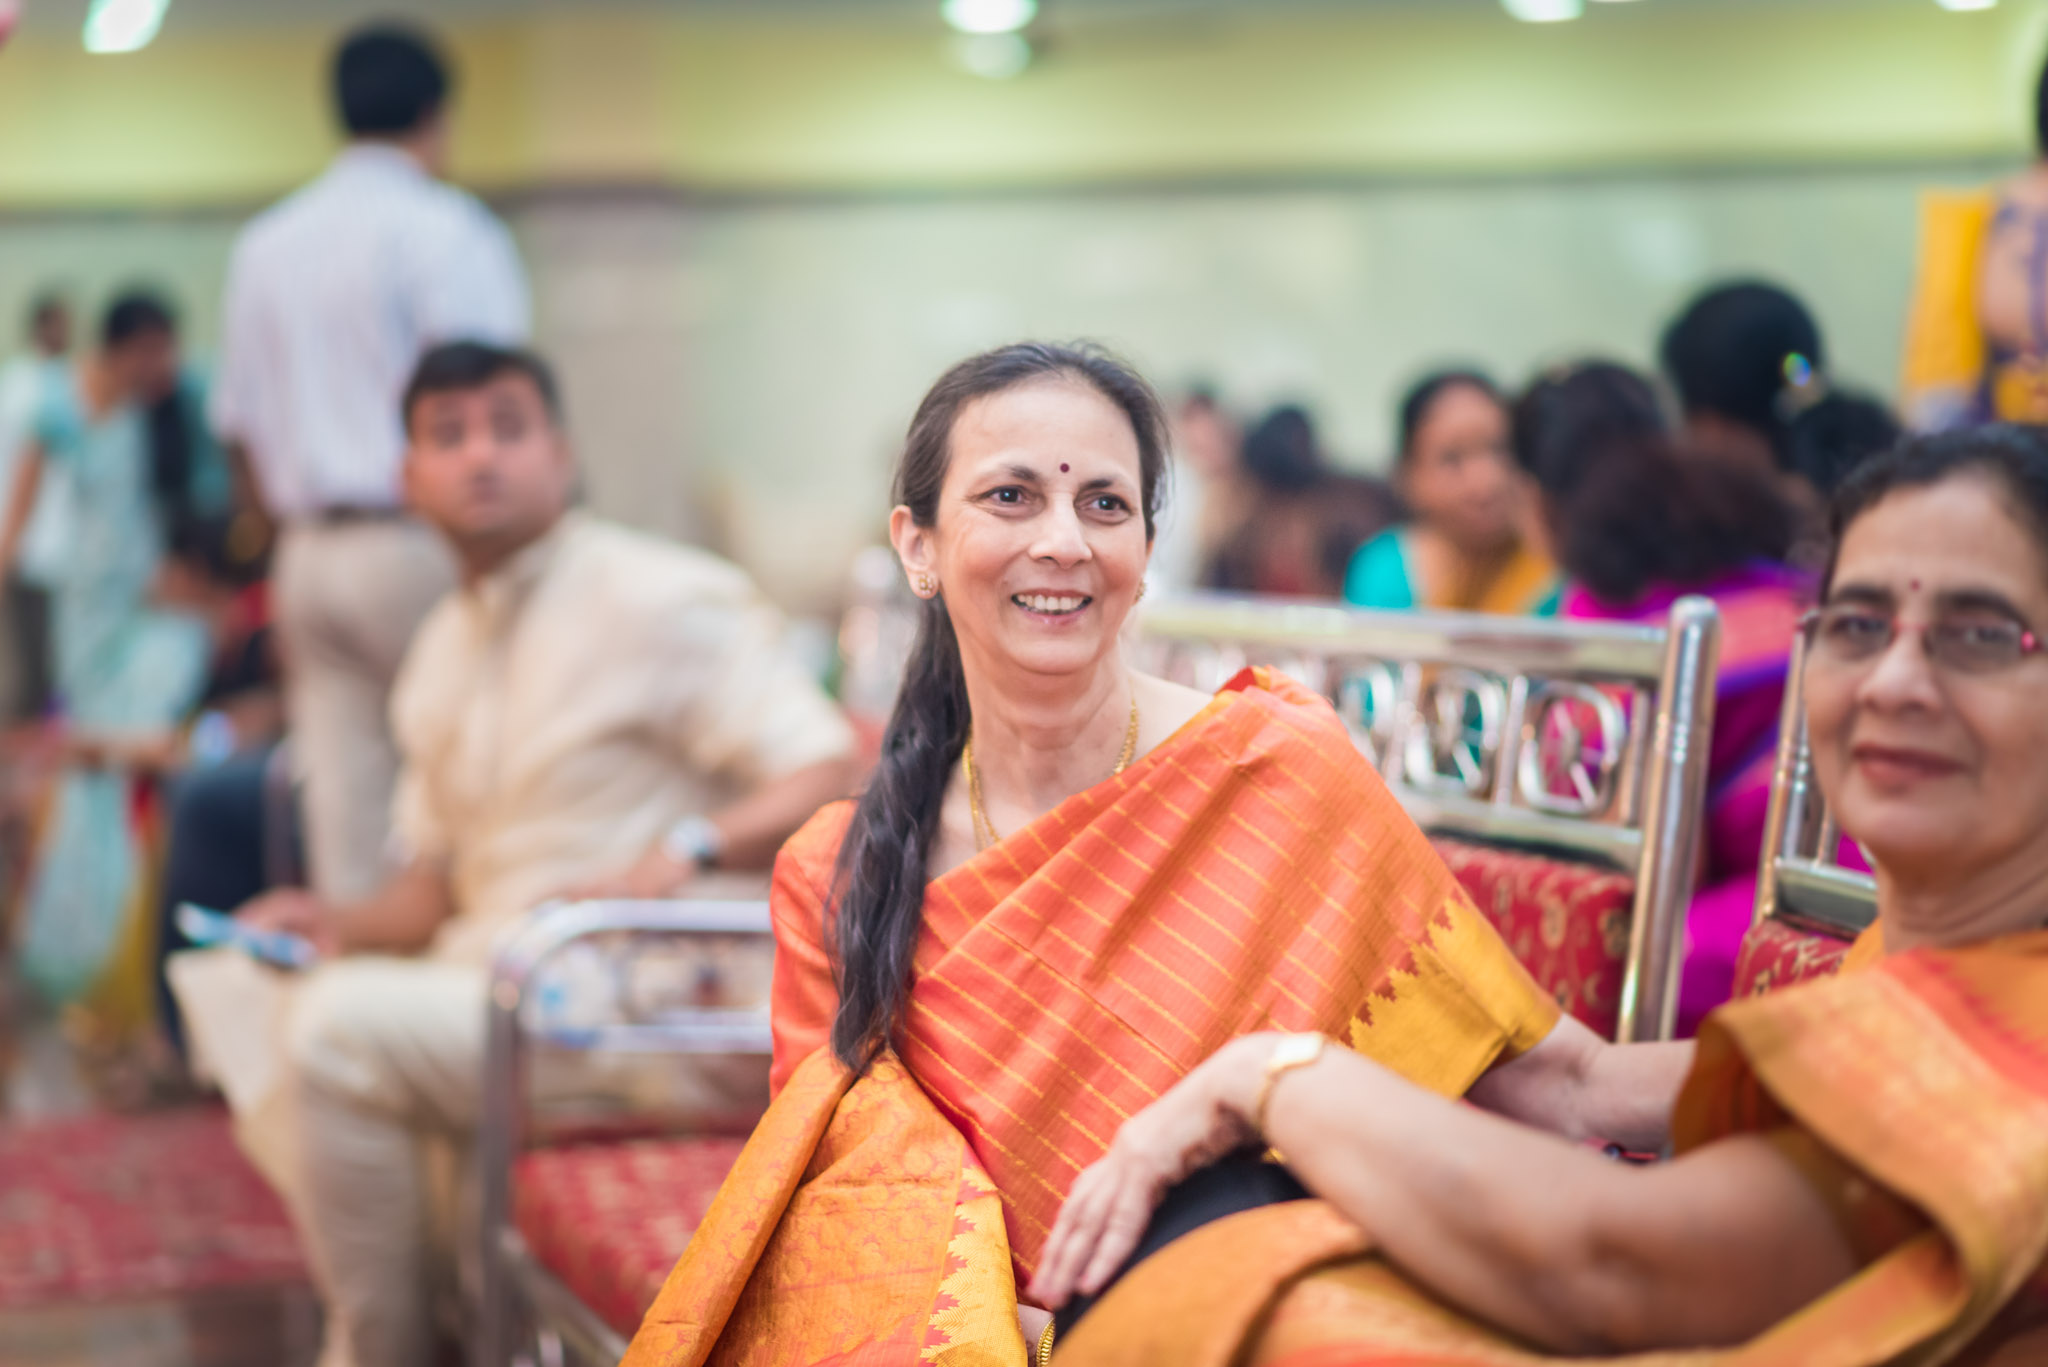 WhatKnot-Candid-Wedding-Photography-Mumbai-Bangalore-65